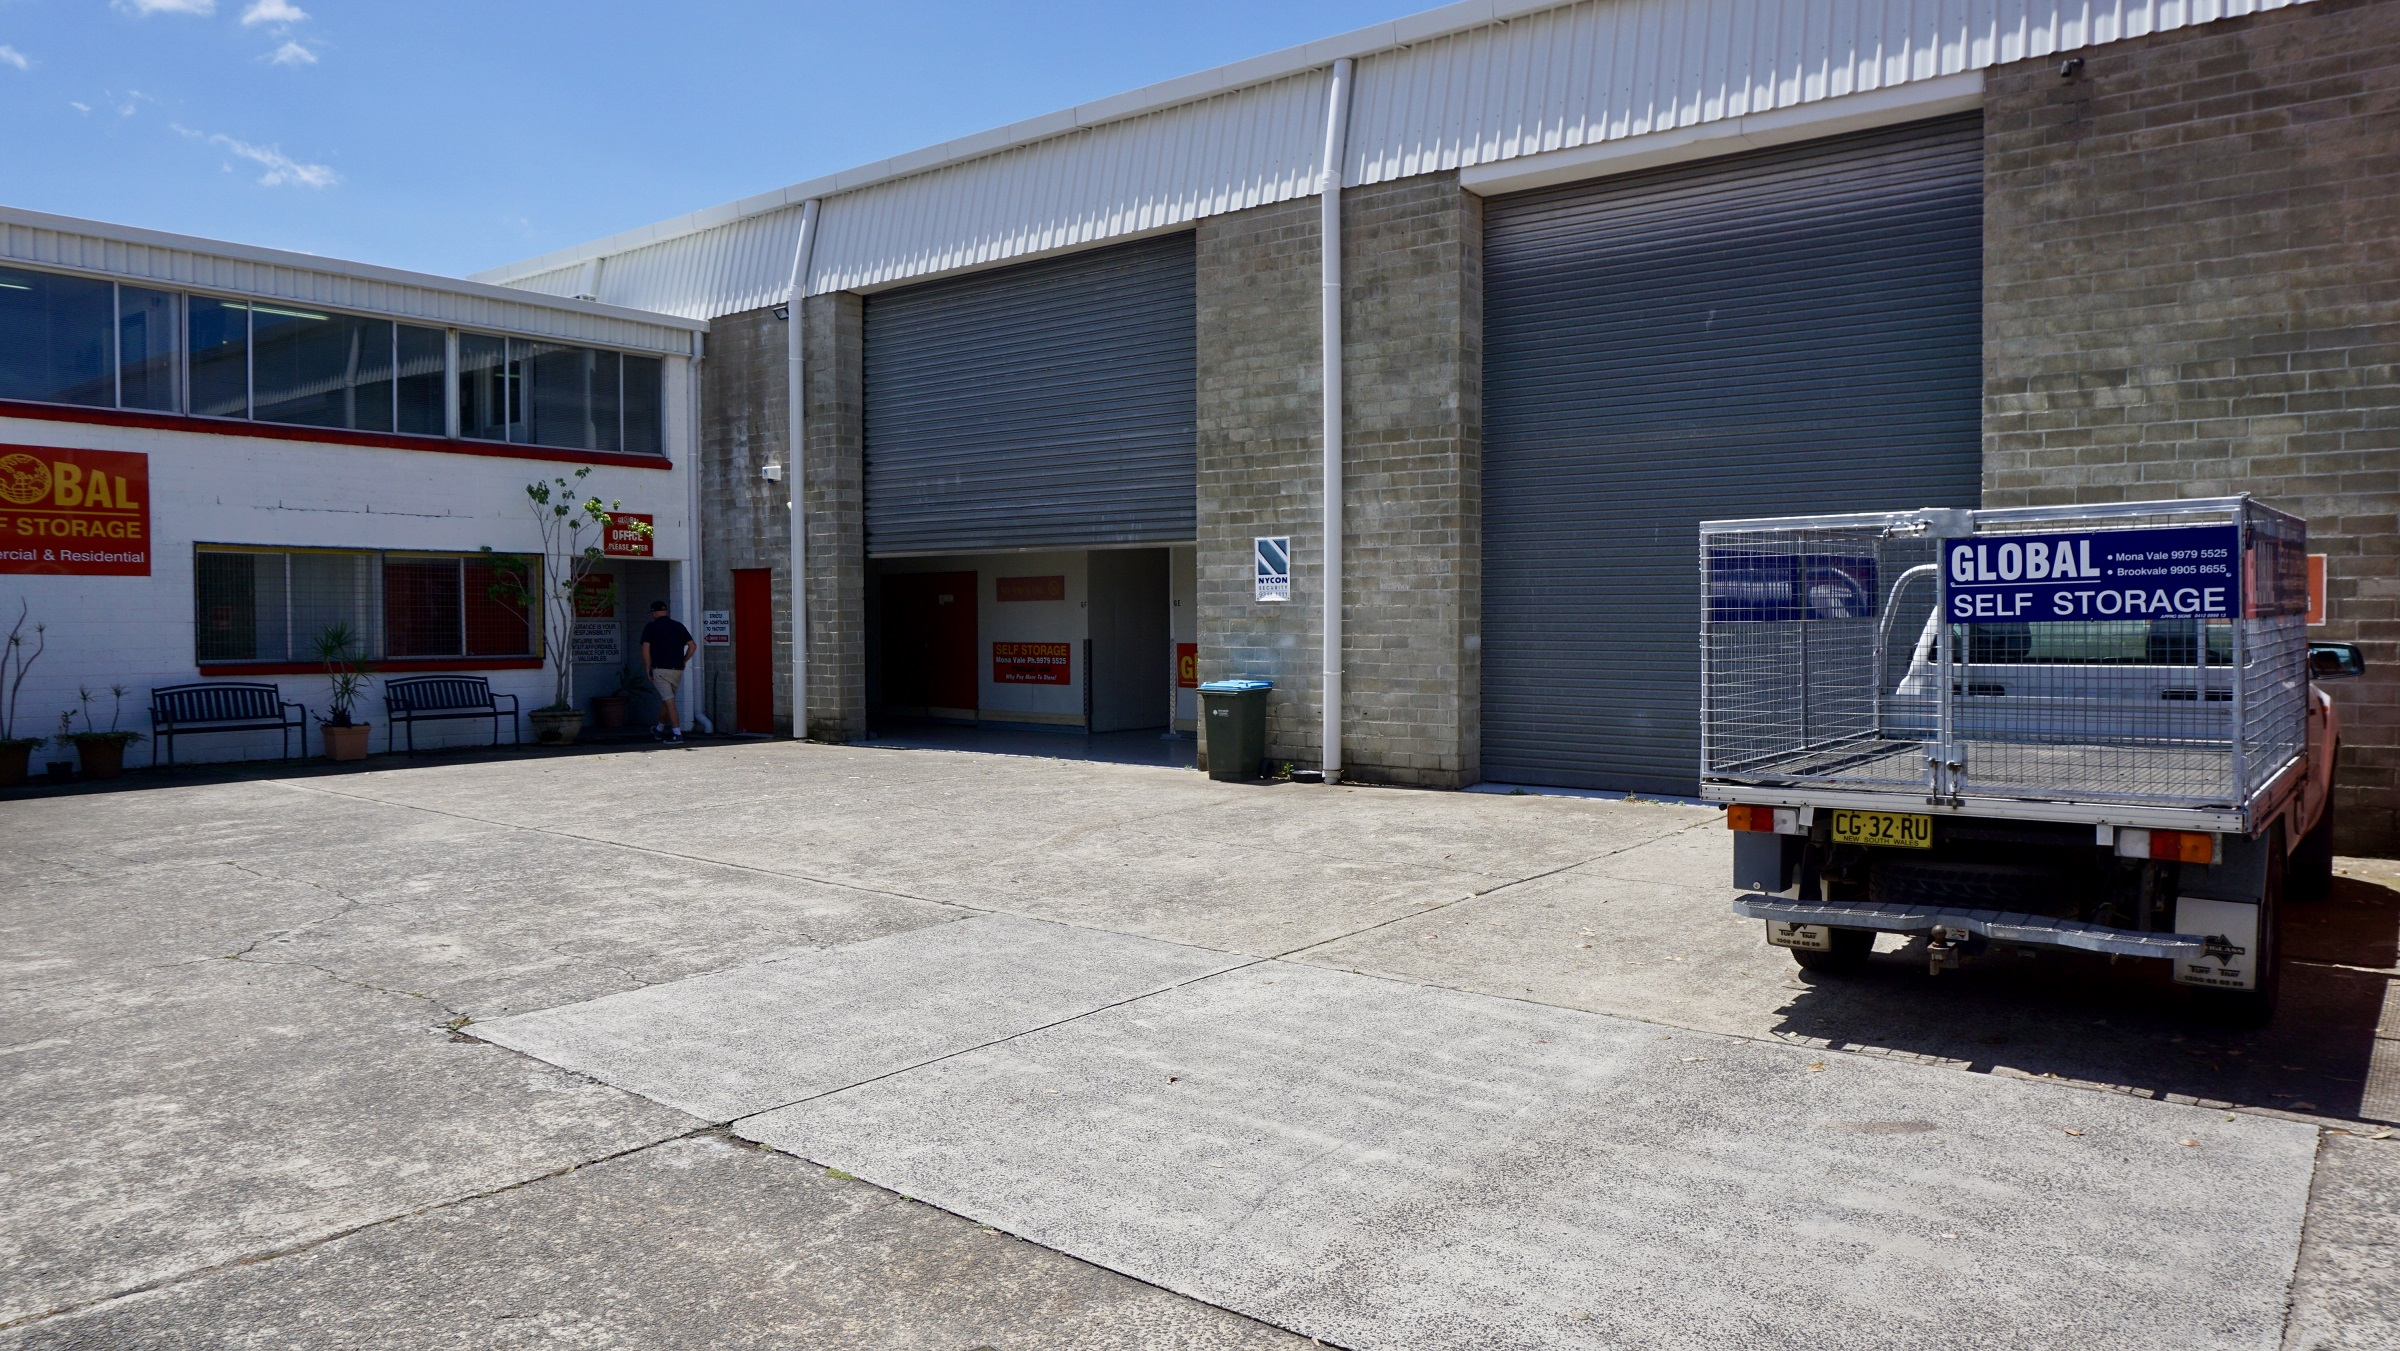 Global storage Mona Vale garage